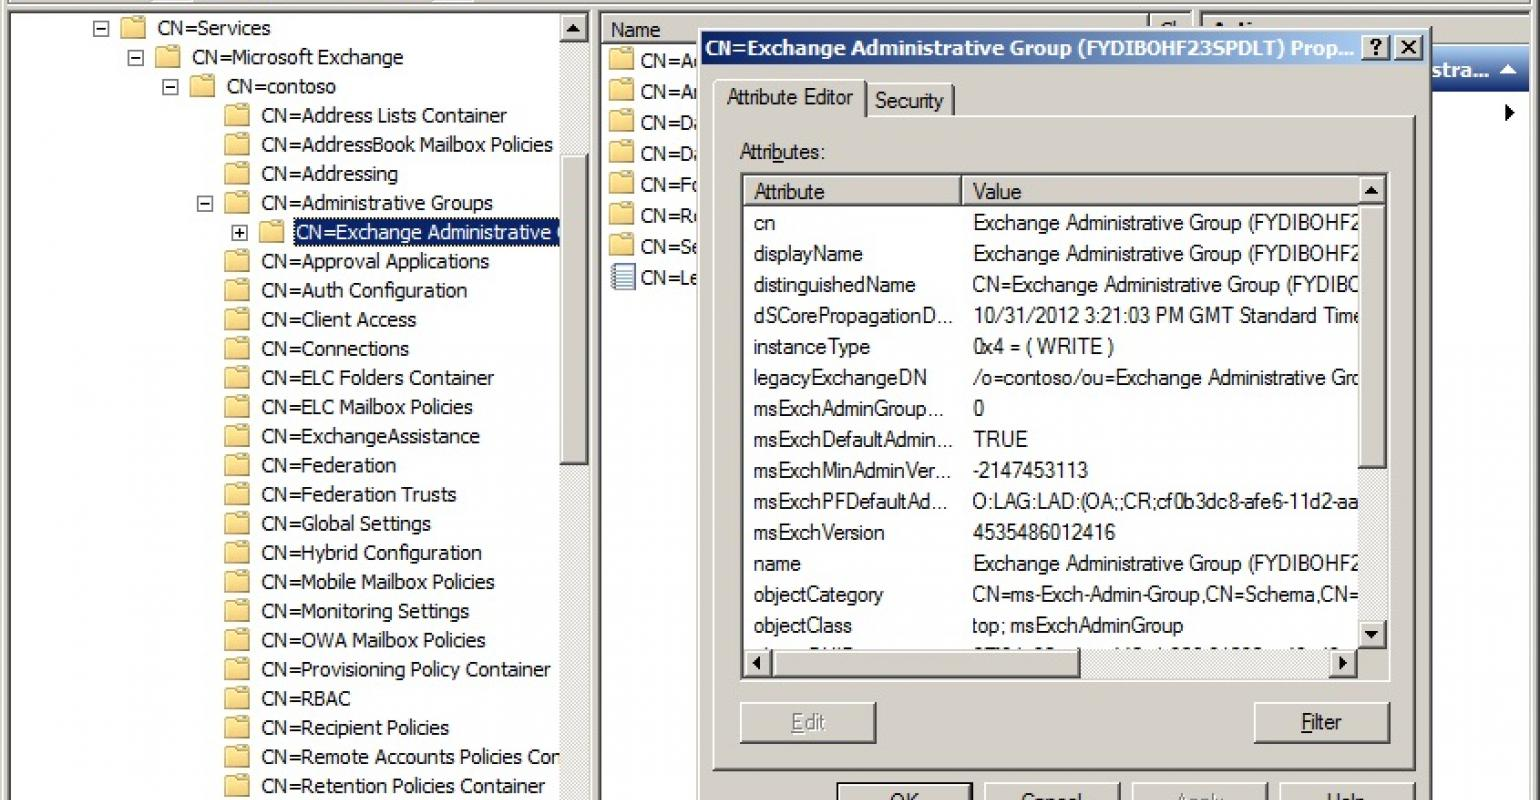 Active Directory and Exchange - too tight for a rename | IT Pro